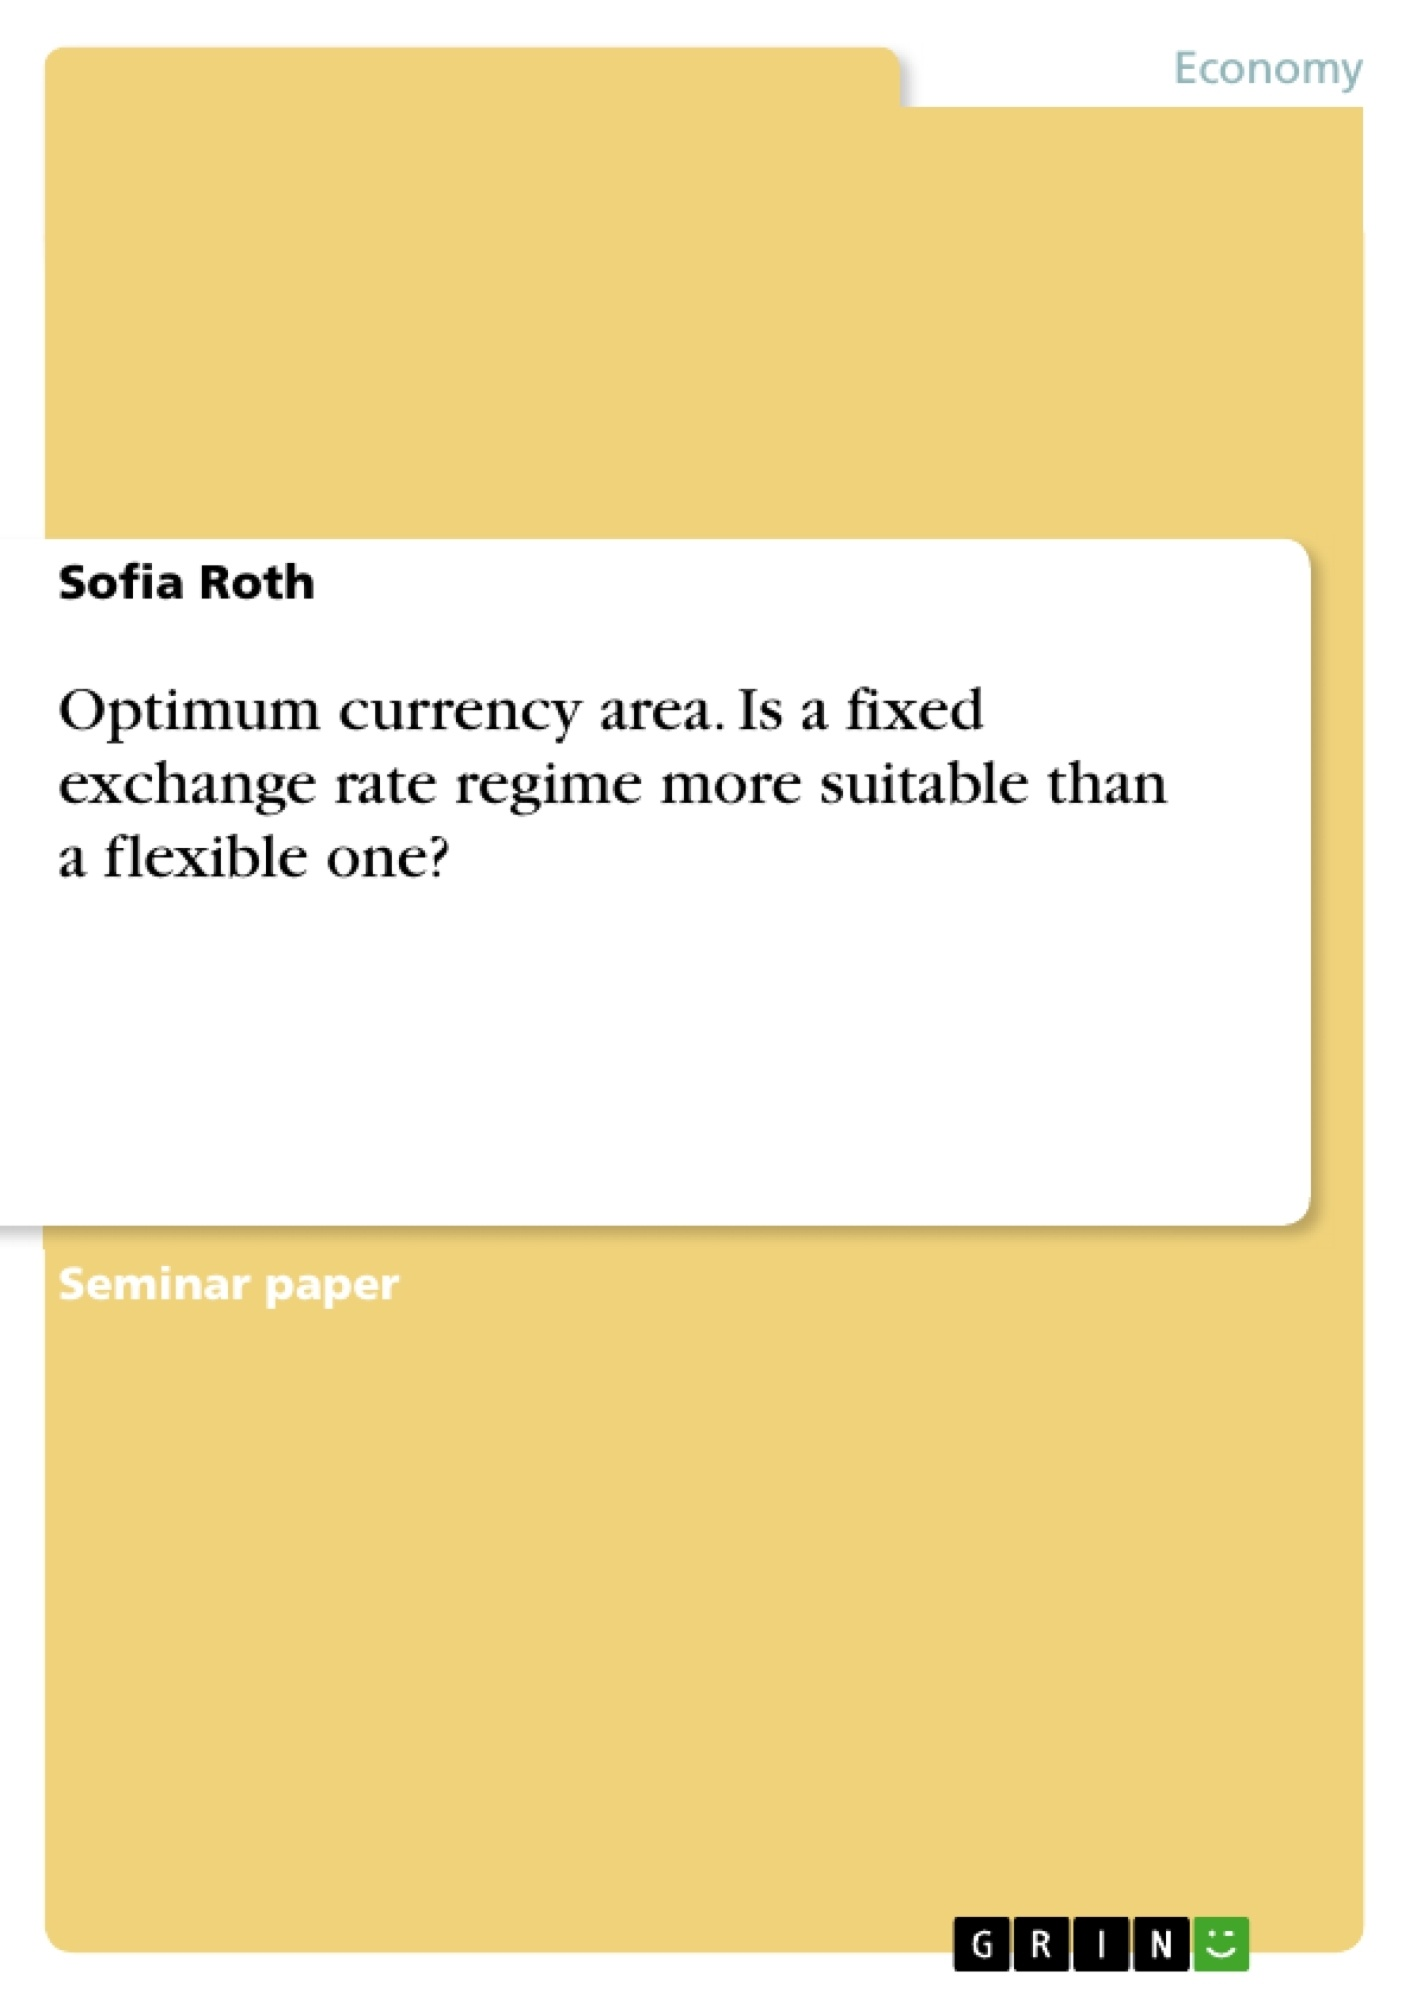 Title: Optimum currency area. Is a fixed exchange rate regime more suitable than a flexible one?